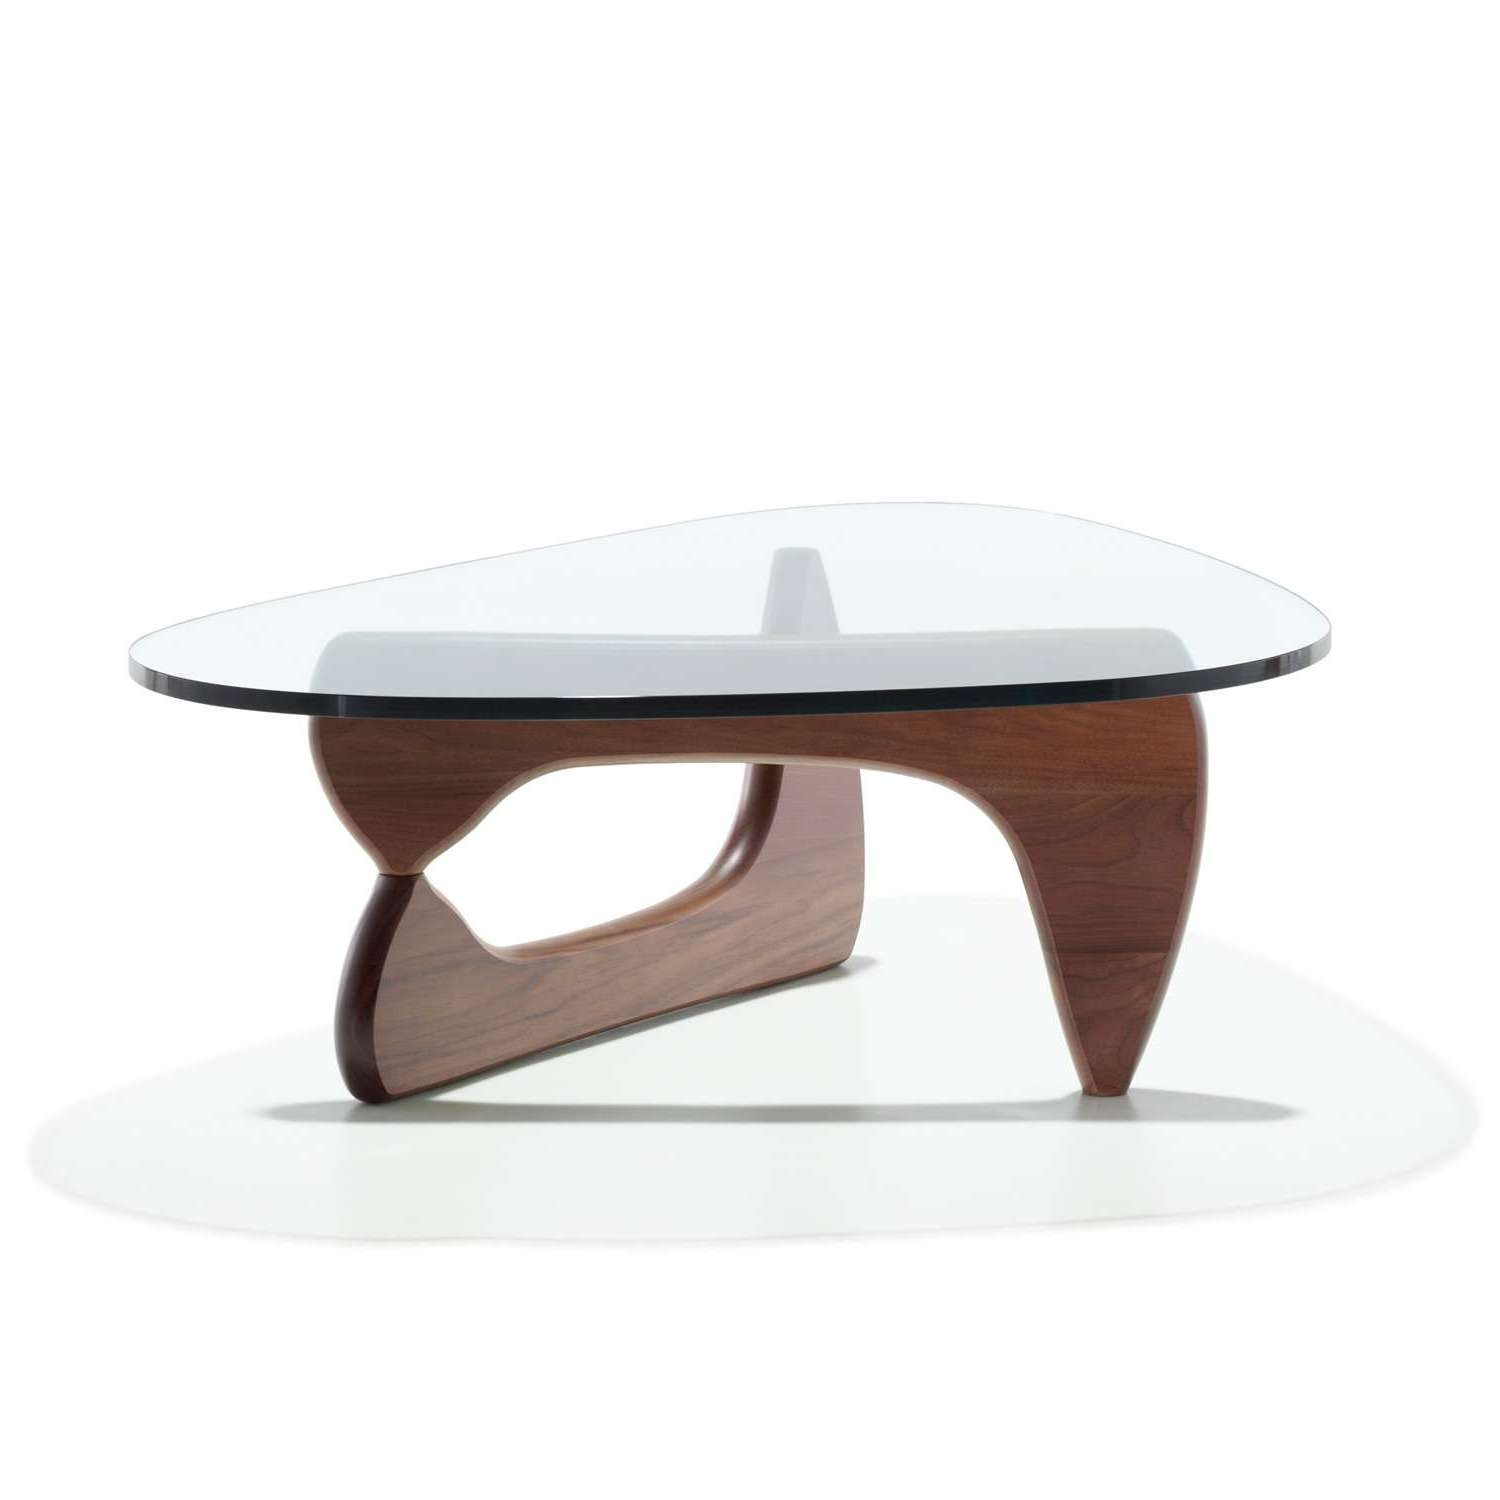 Most Recently Released Noguchi Coffee Tables Pertaining To Noguchi Coffee Tableherman Miller (View 8 of 20)